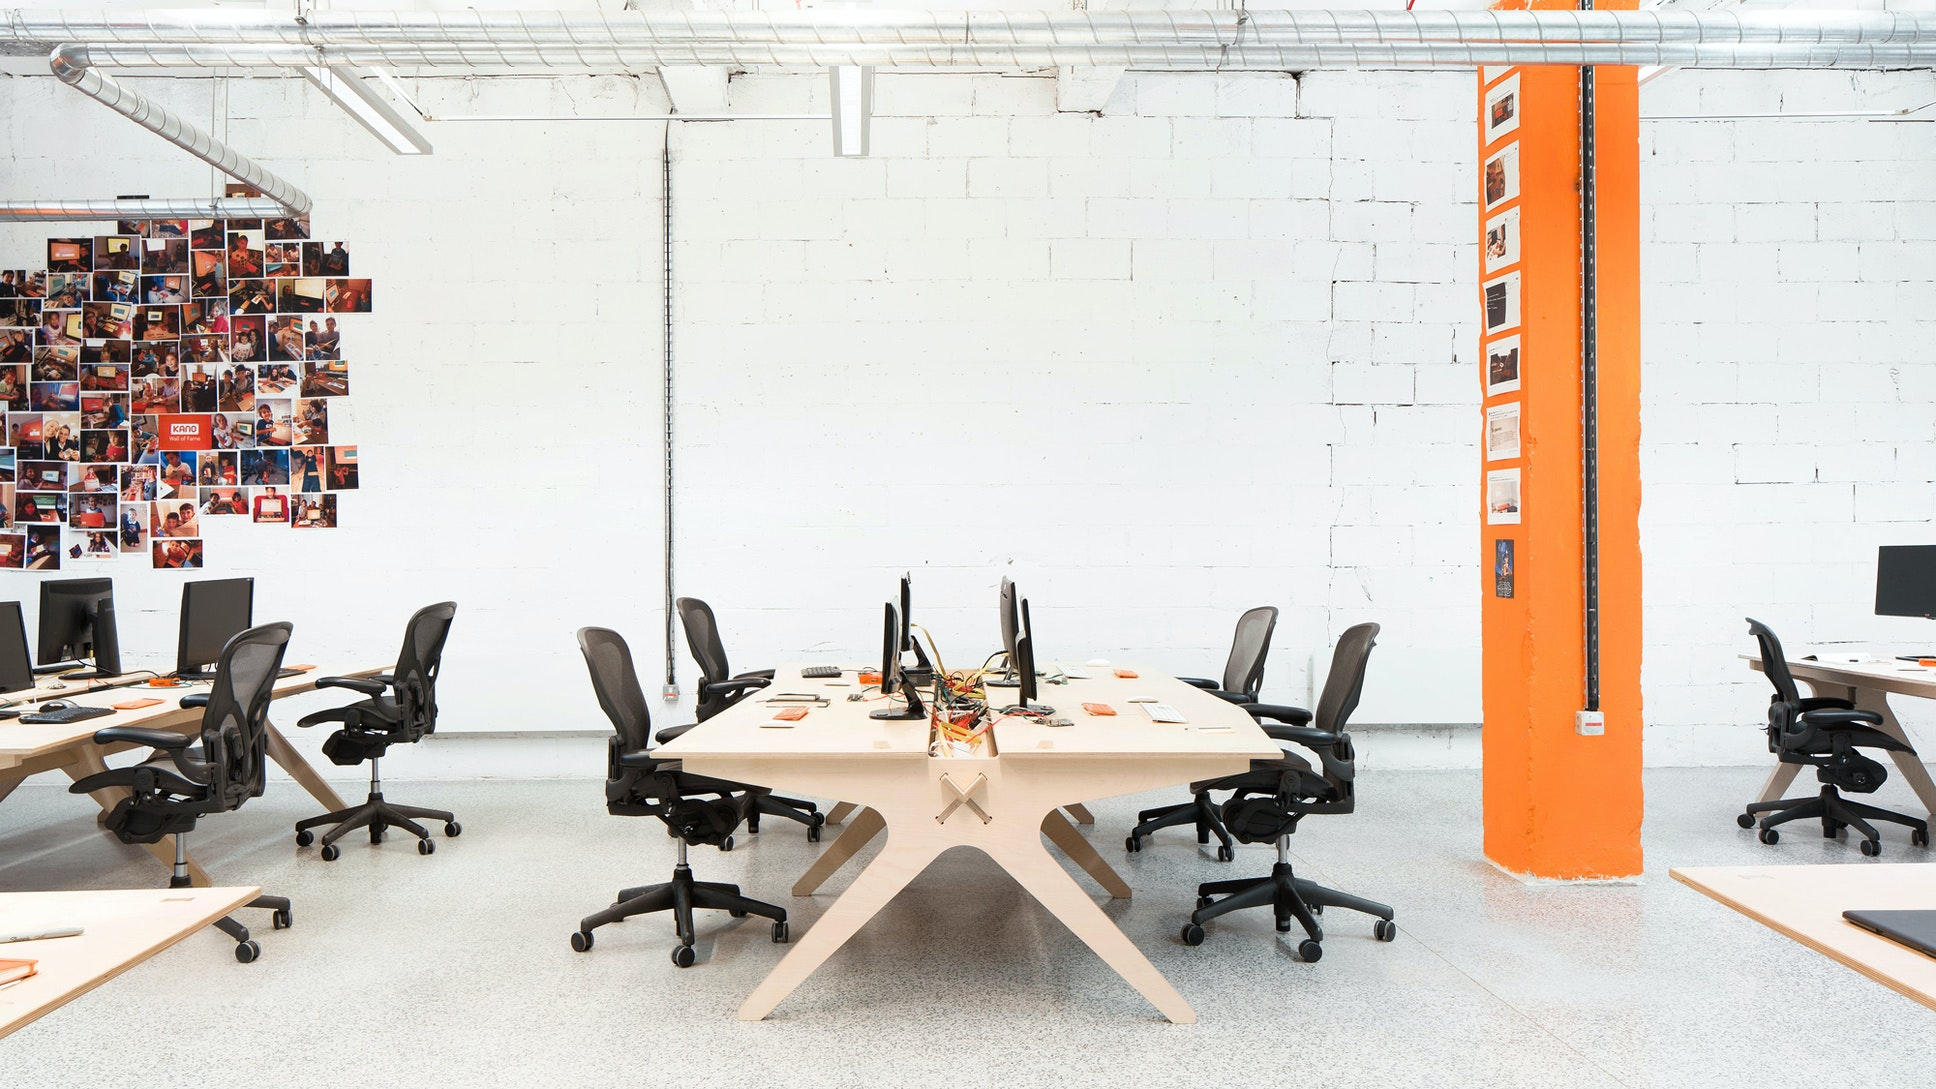 The offices for Kano feature bespoke furniture